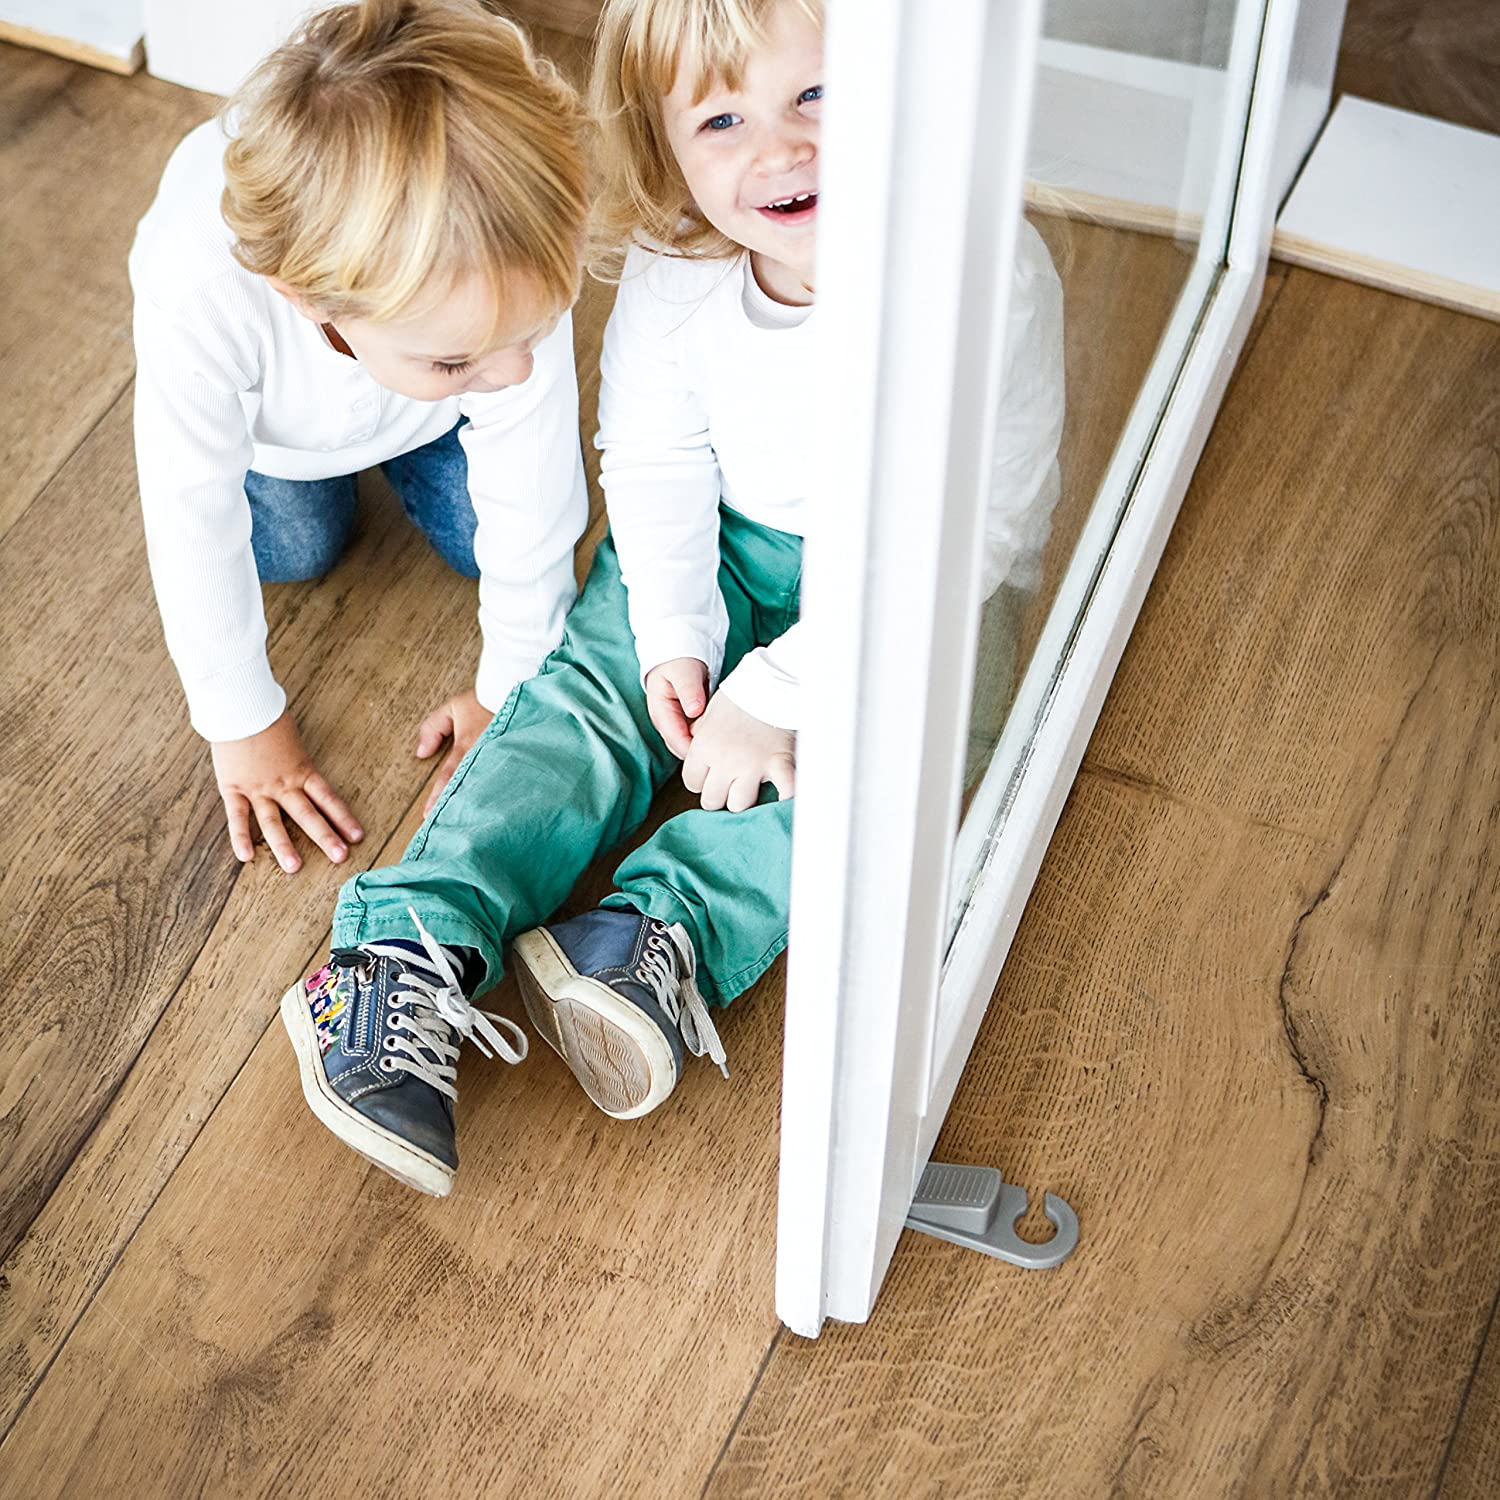 Home and Office Non-Skid for Baby Safety Grey Hauck Stop Me Door Stopper Wedge Pack of 2